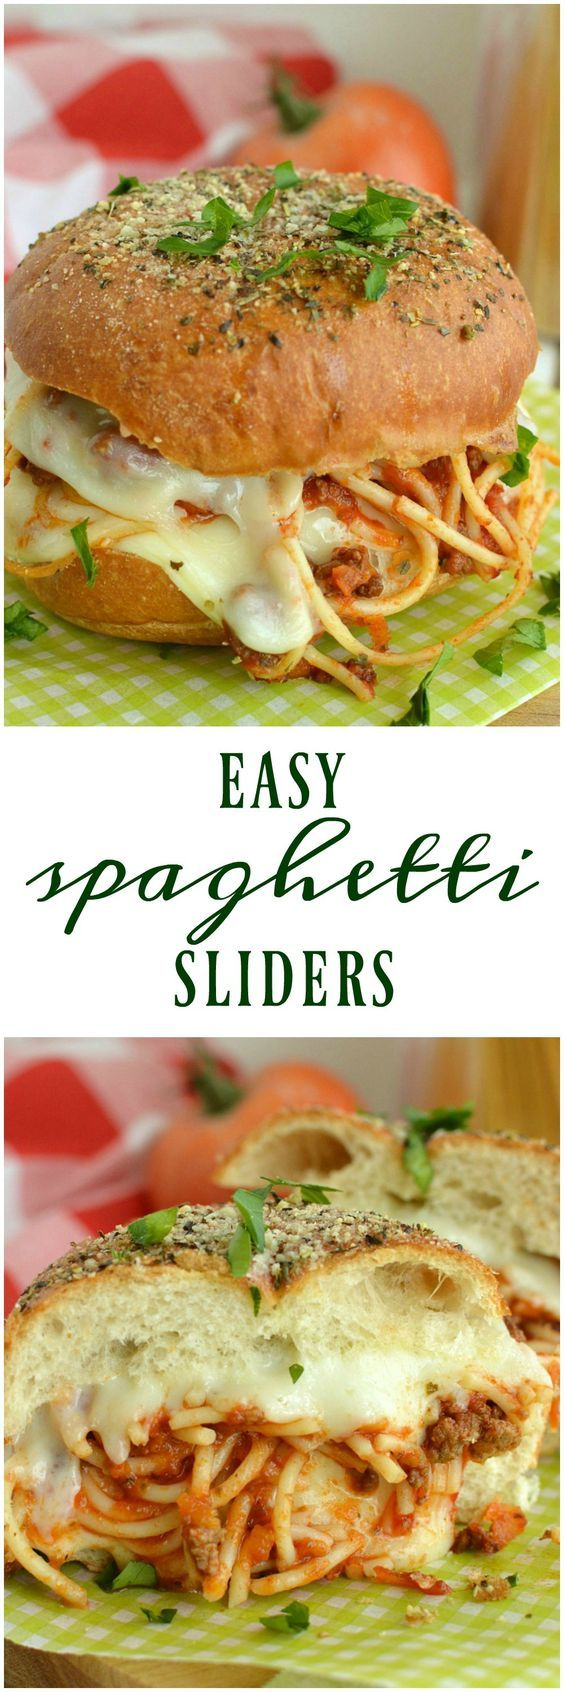 Easy Spaghetti Sliders are hearty spaghetti,  layers of cheese, and garlic bread all wrapped up in one scrumptious little slider!